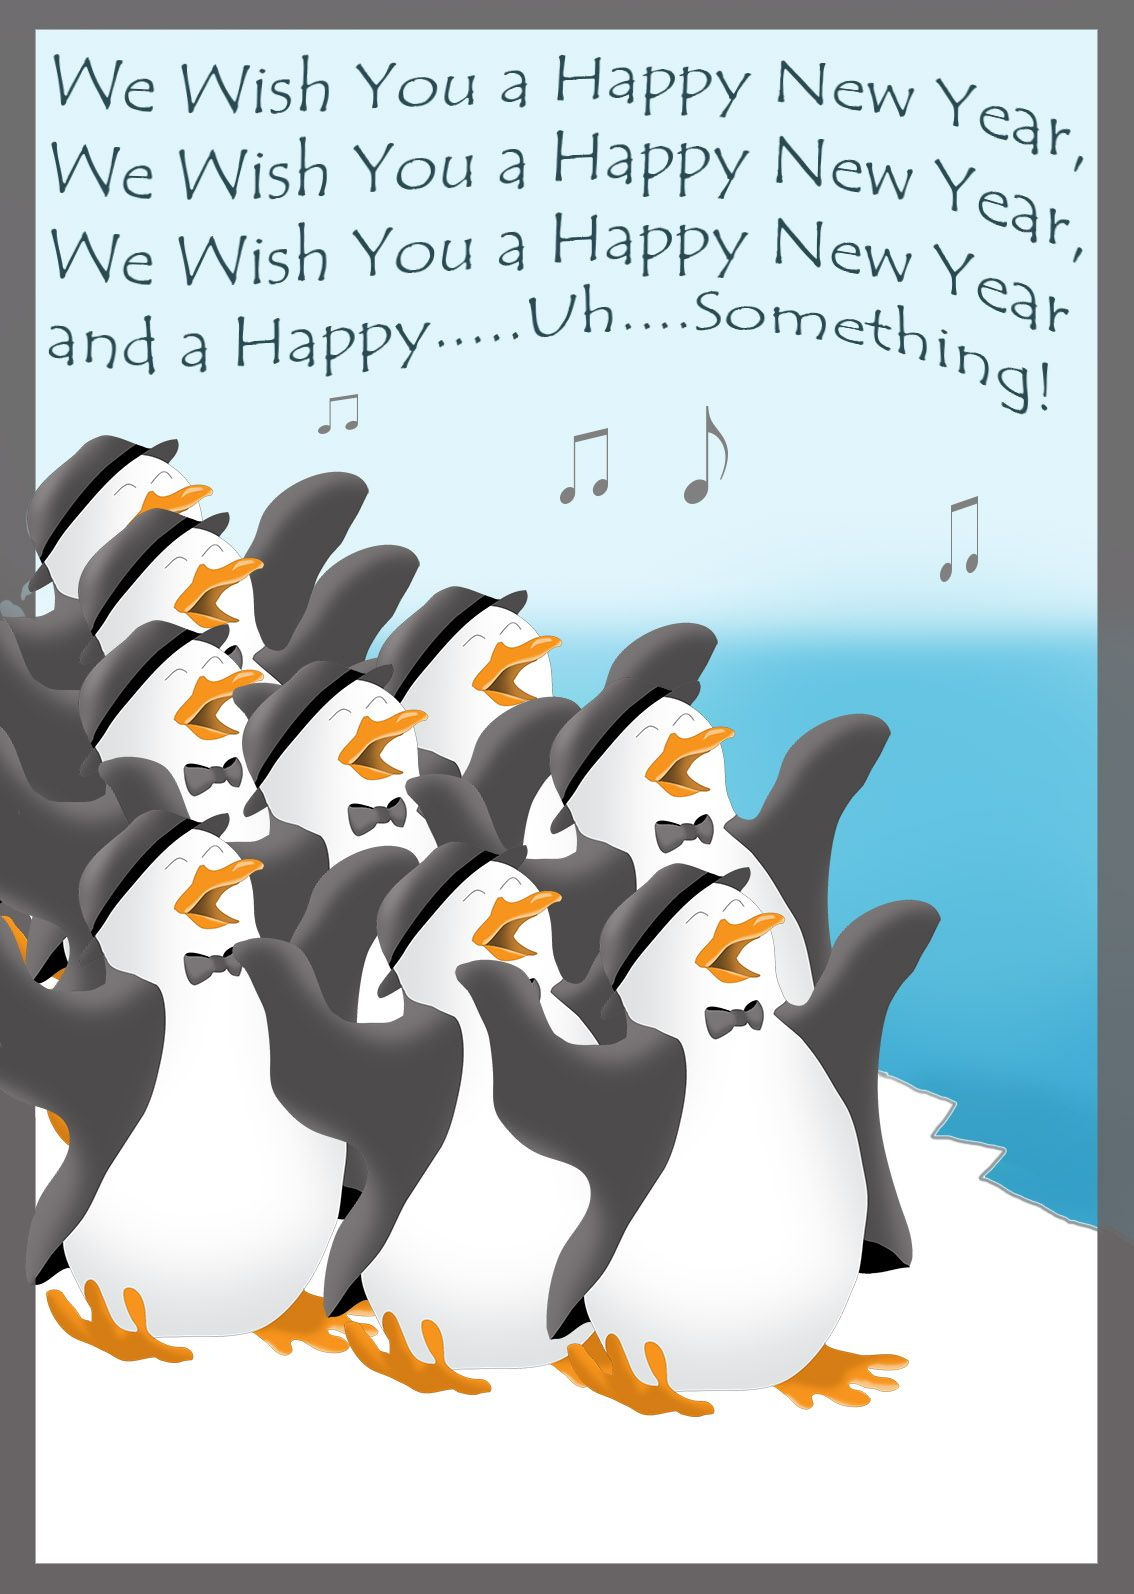 Funny New Year Greeting With Festively Dressed Penguins Singing A